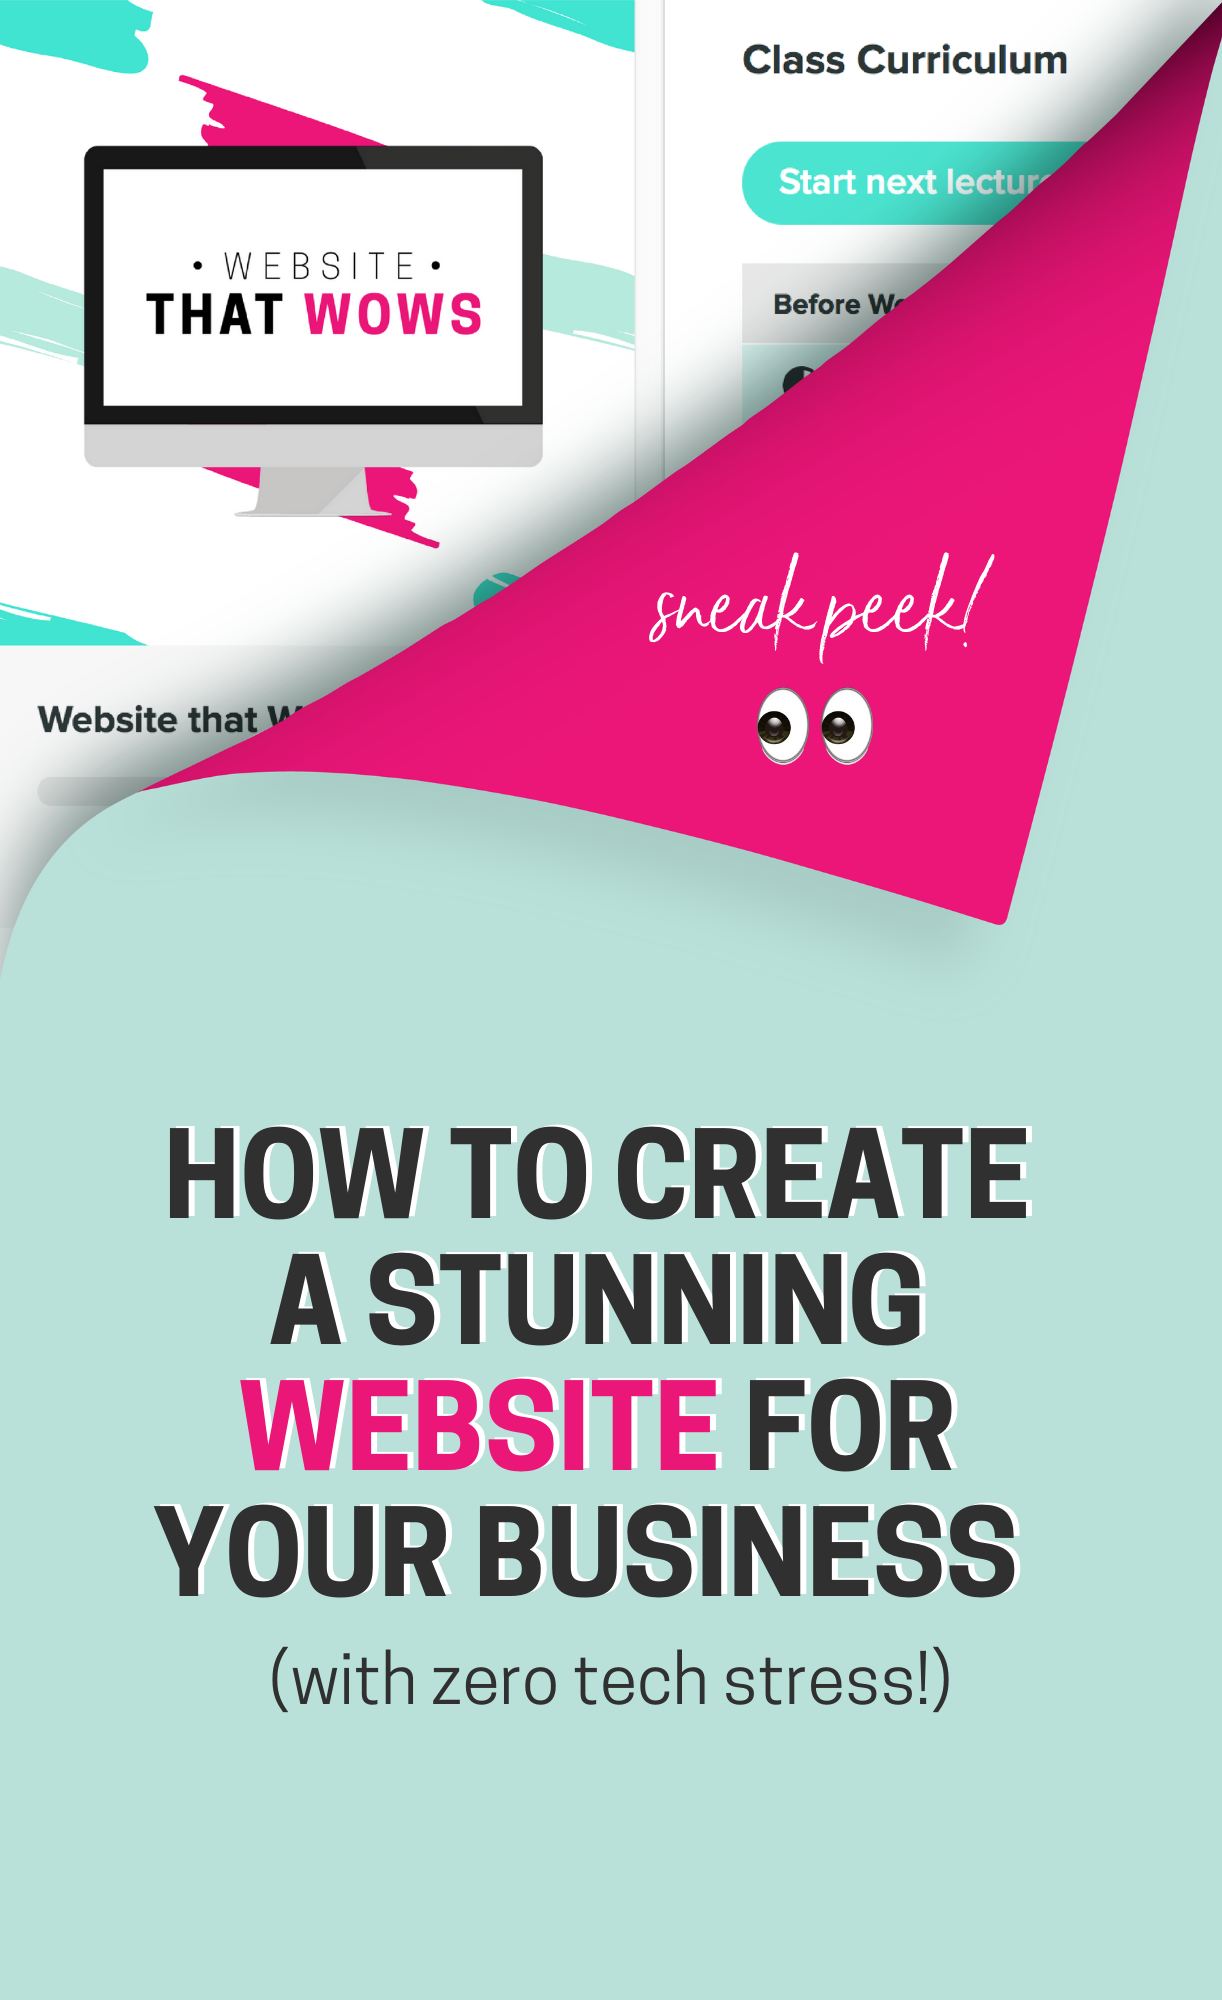 Build your own website in just 7 days. Get a free trial of